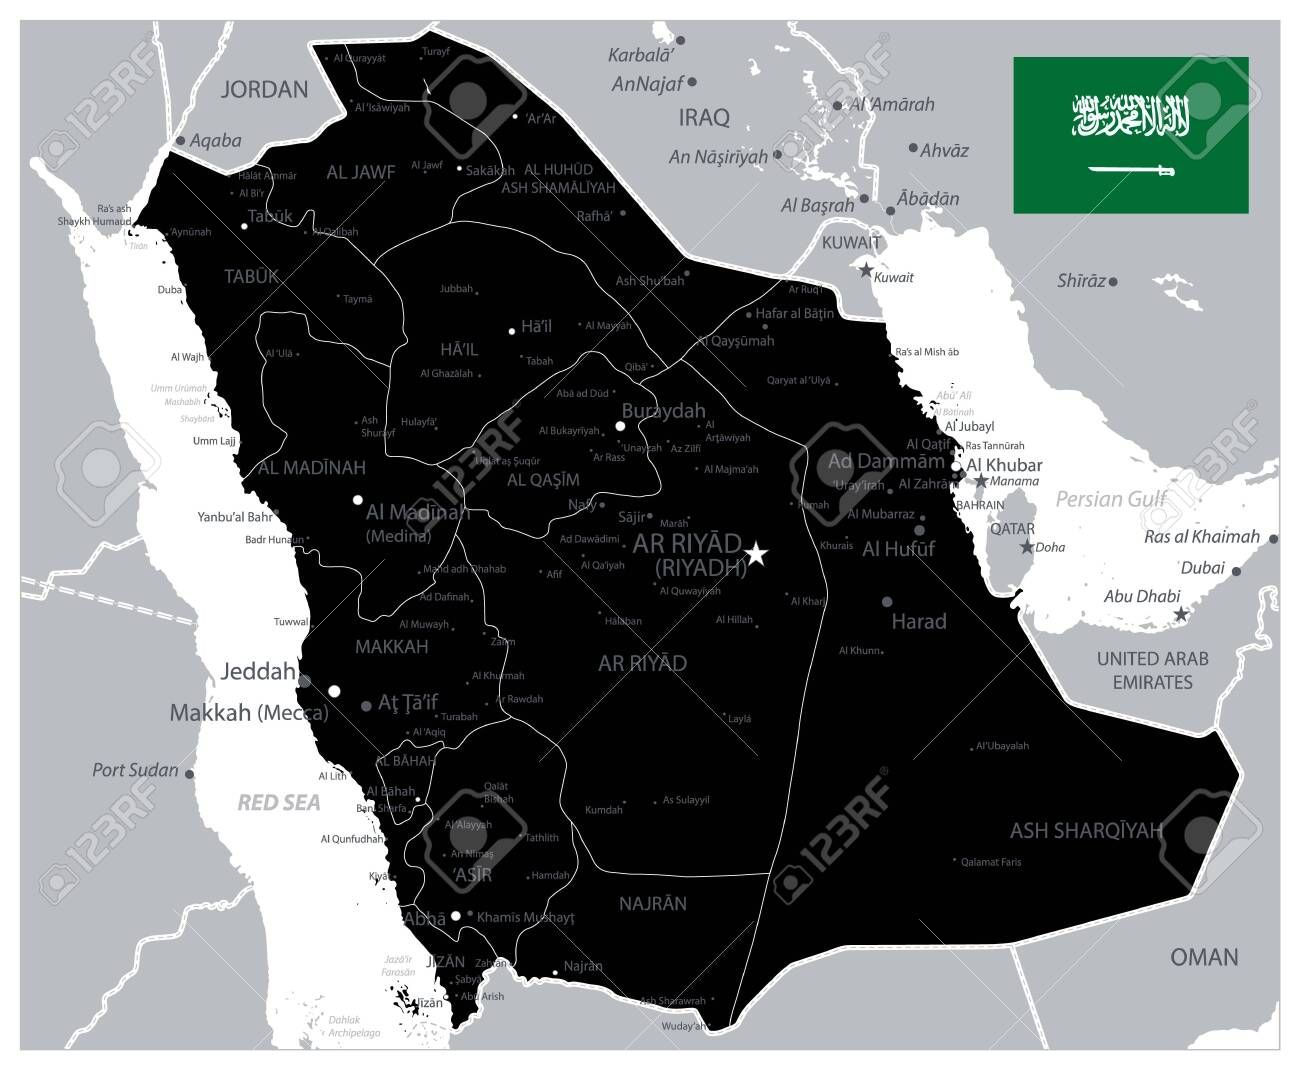 Black Color Saudi Arabia Map Image Contains Layers With Administrative Divisions Map Land Names City Name In 2020 Vector Illustration Administrative Division Image